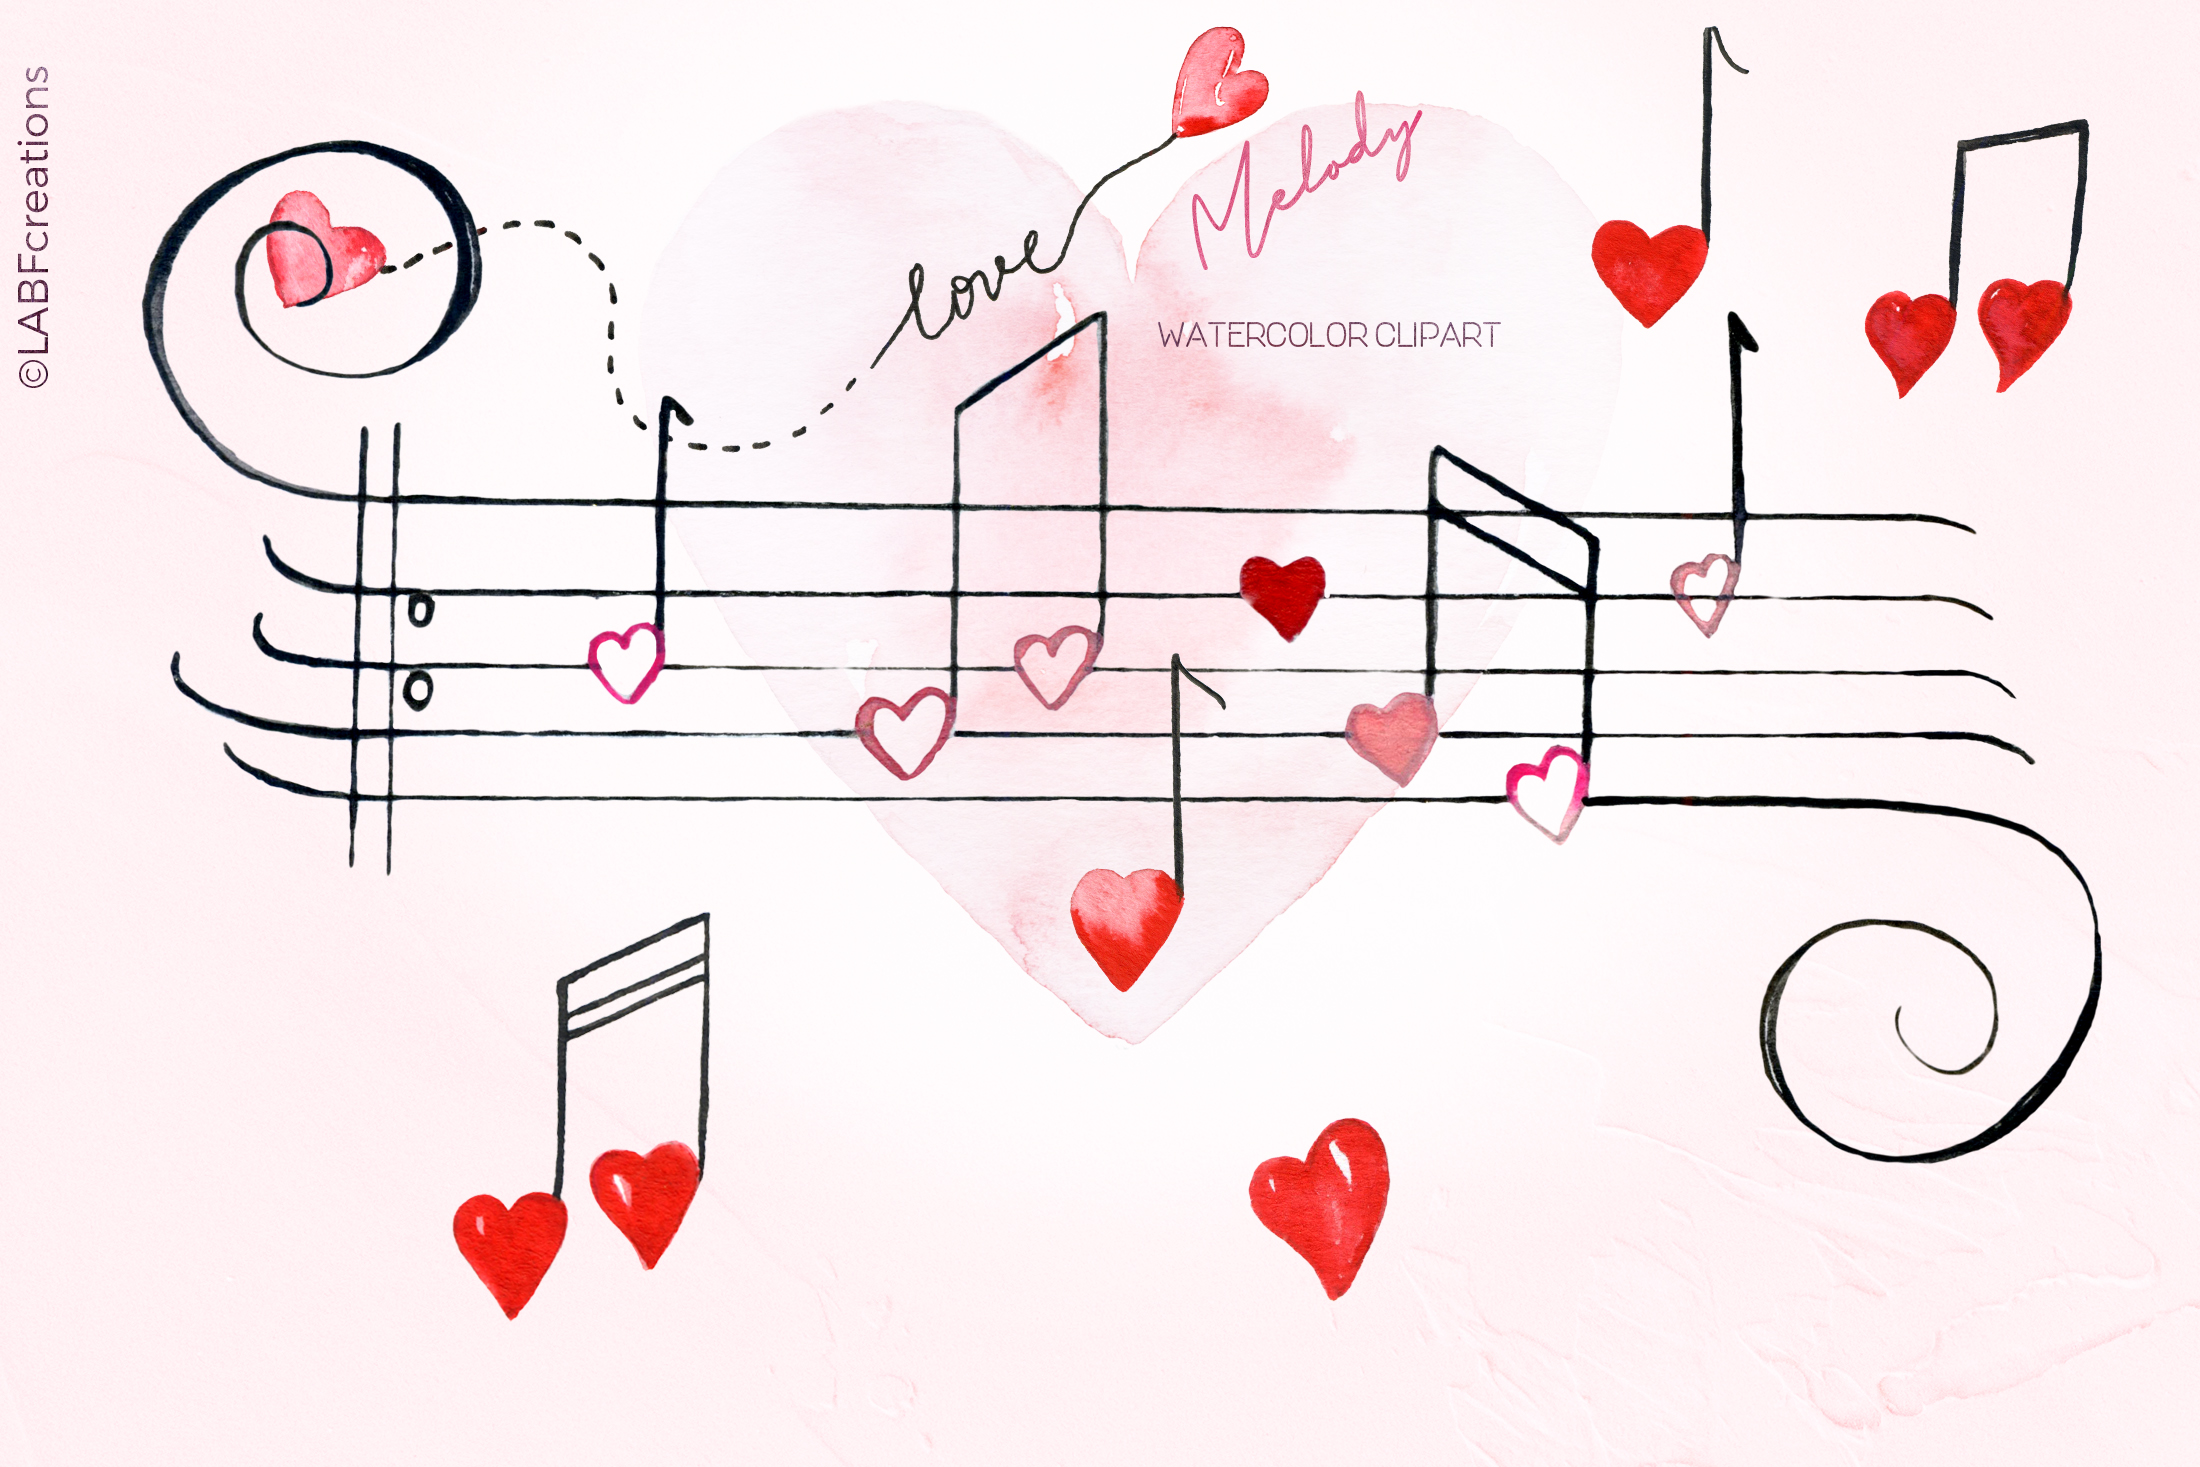 Love melody. Watercolor clipart example image 2